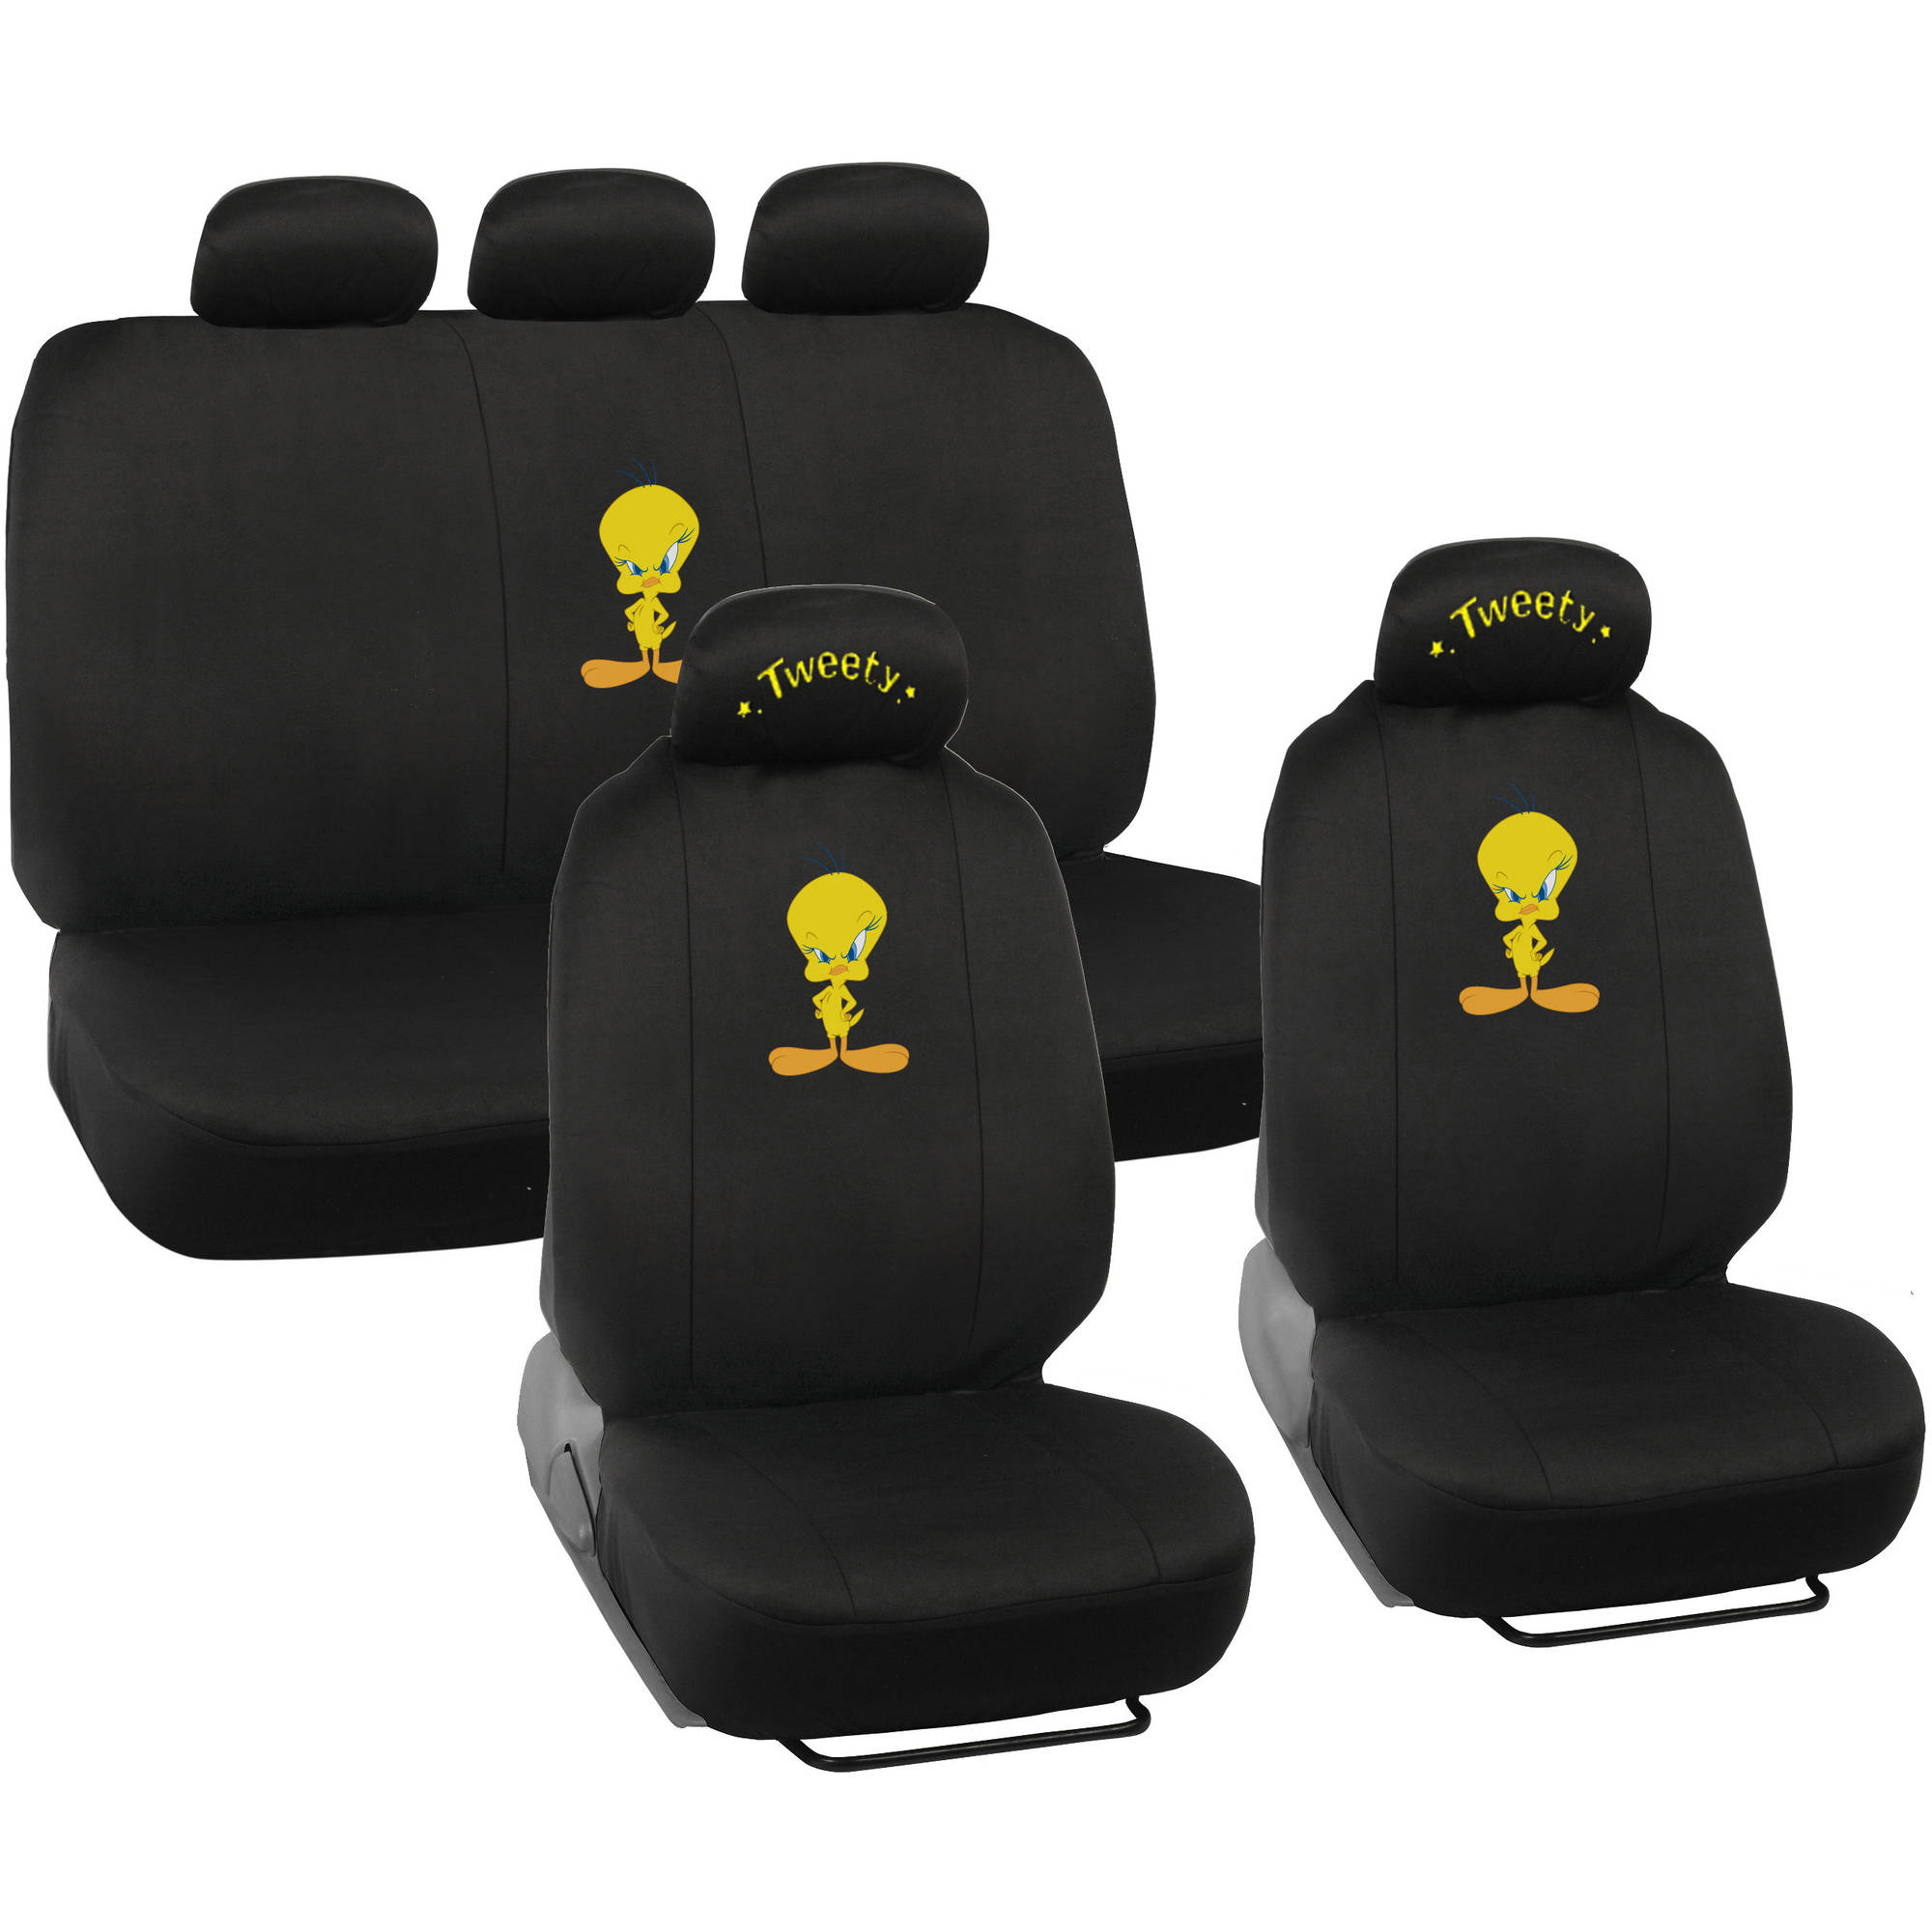 Tweety Bird Seat Covers for Car and SUV, Auto Interior Gift Full Set, Warner Brothers